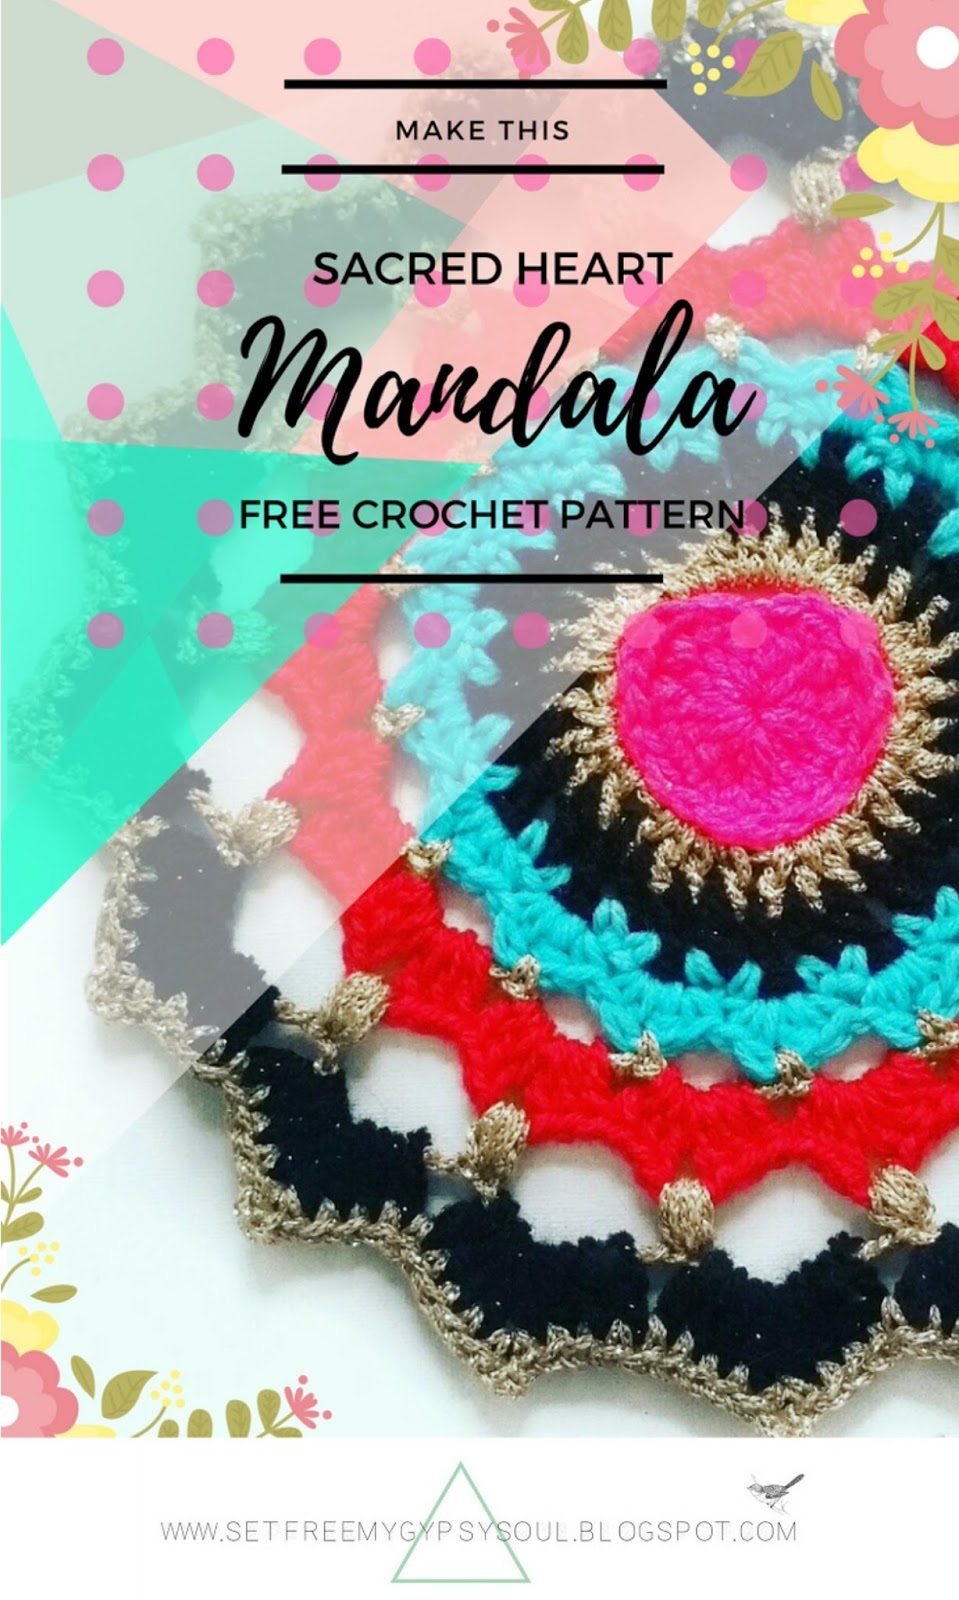 heart crochet pattern mandala